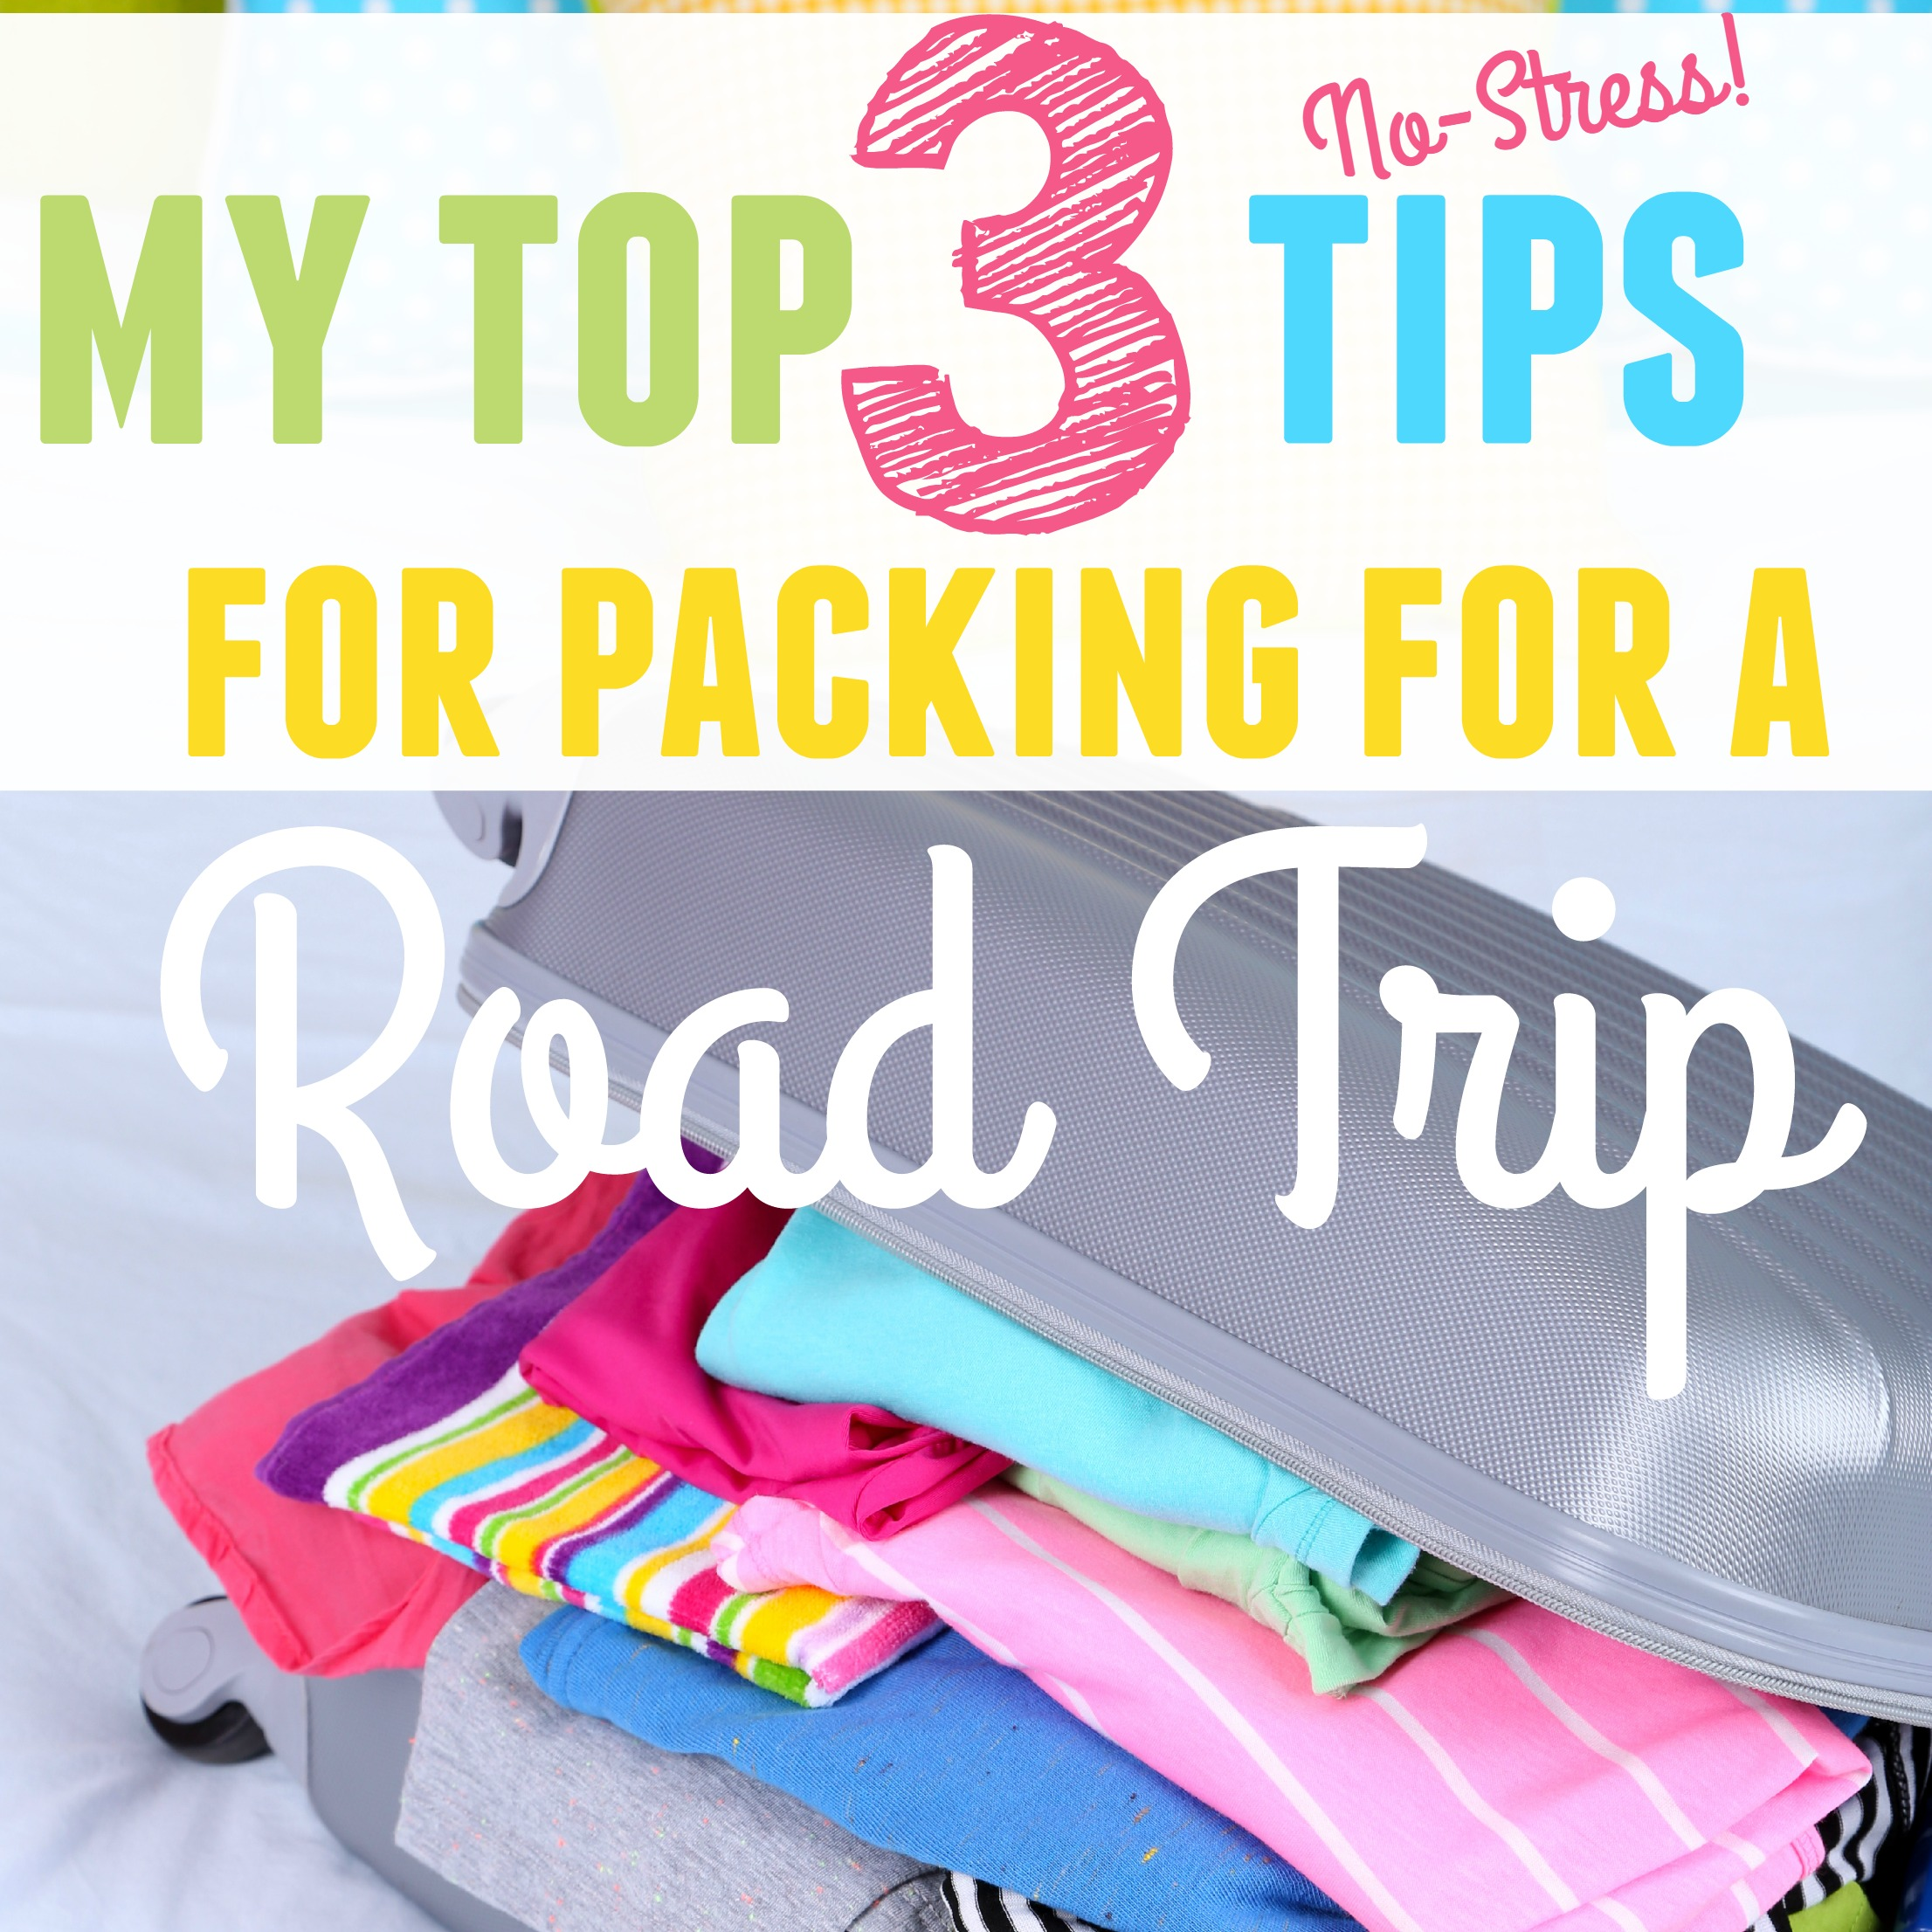 My top three tips for packing for a road trip successfully!